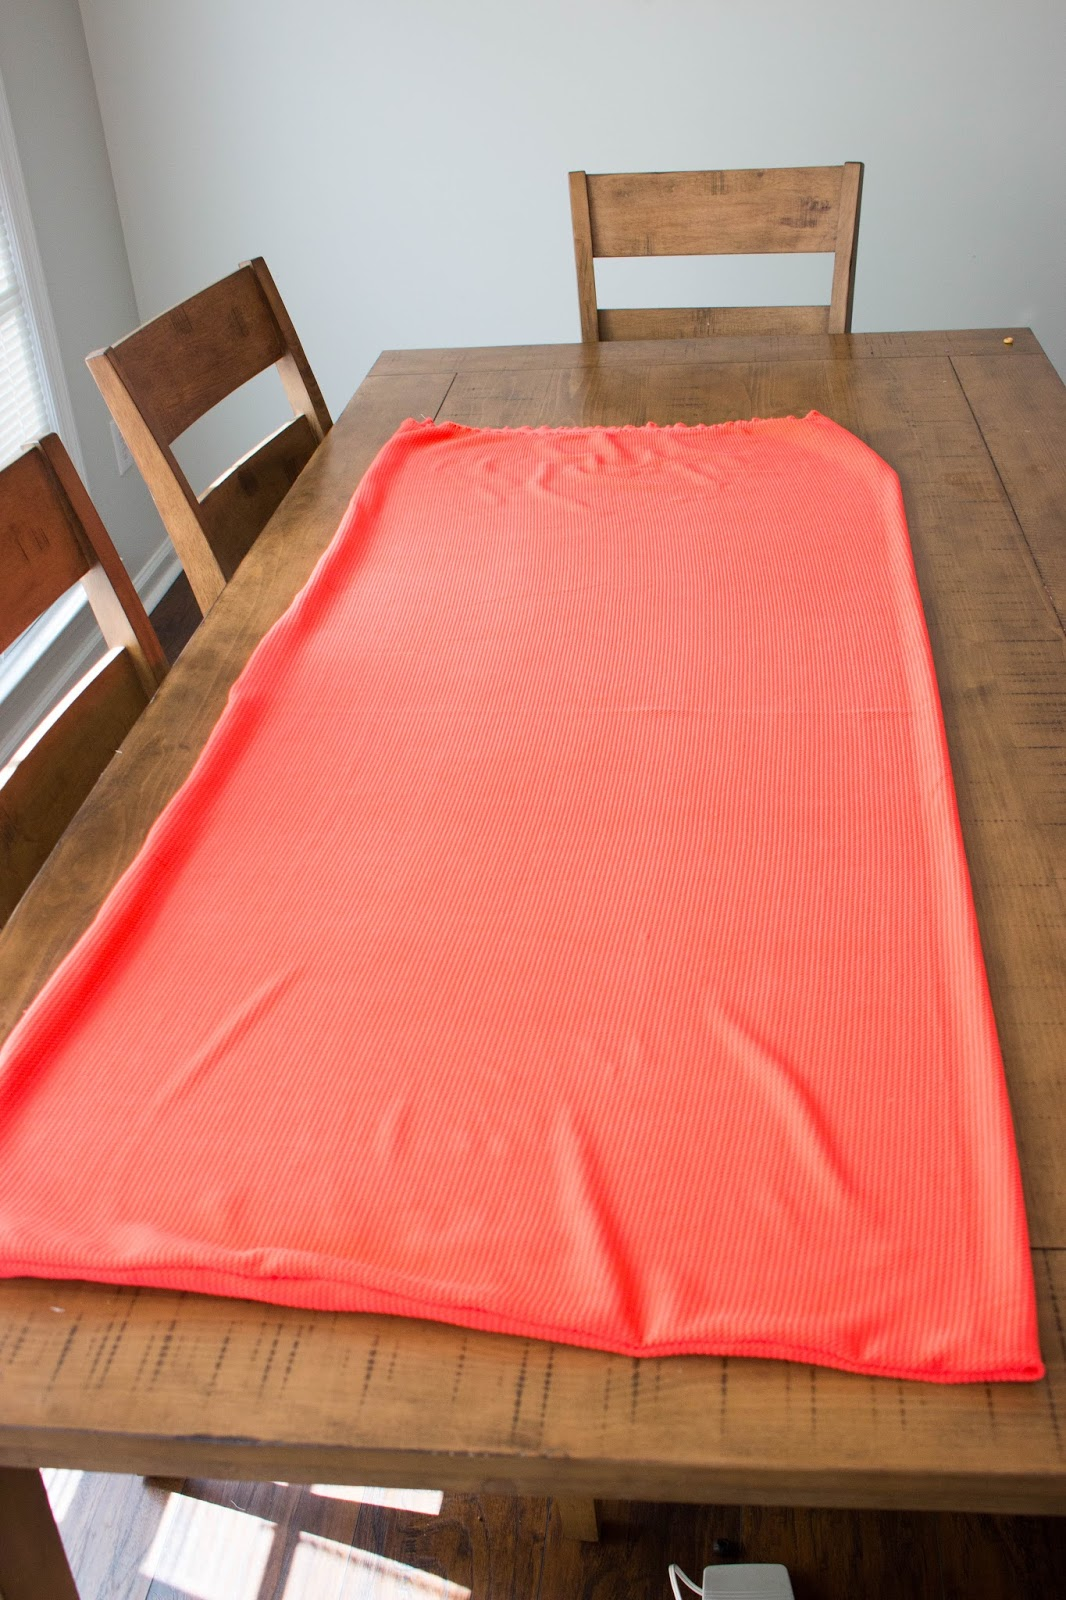 At This Point It Just Looks Like A Big Stretchy Sleeping Bag.  Congratulations, Youu0027ve Succeeded.